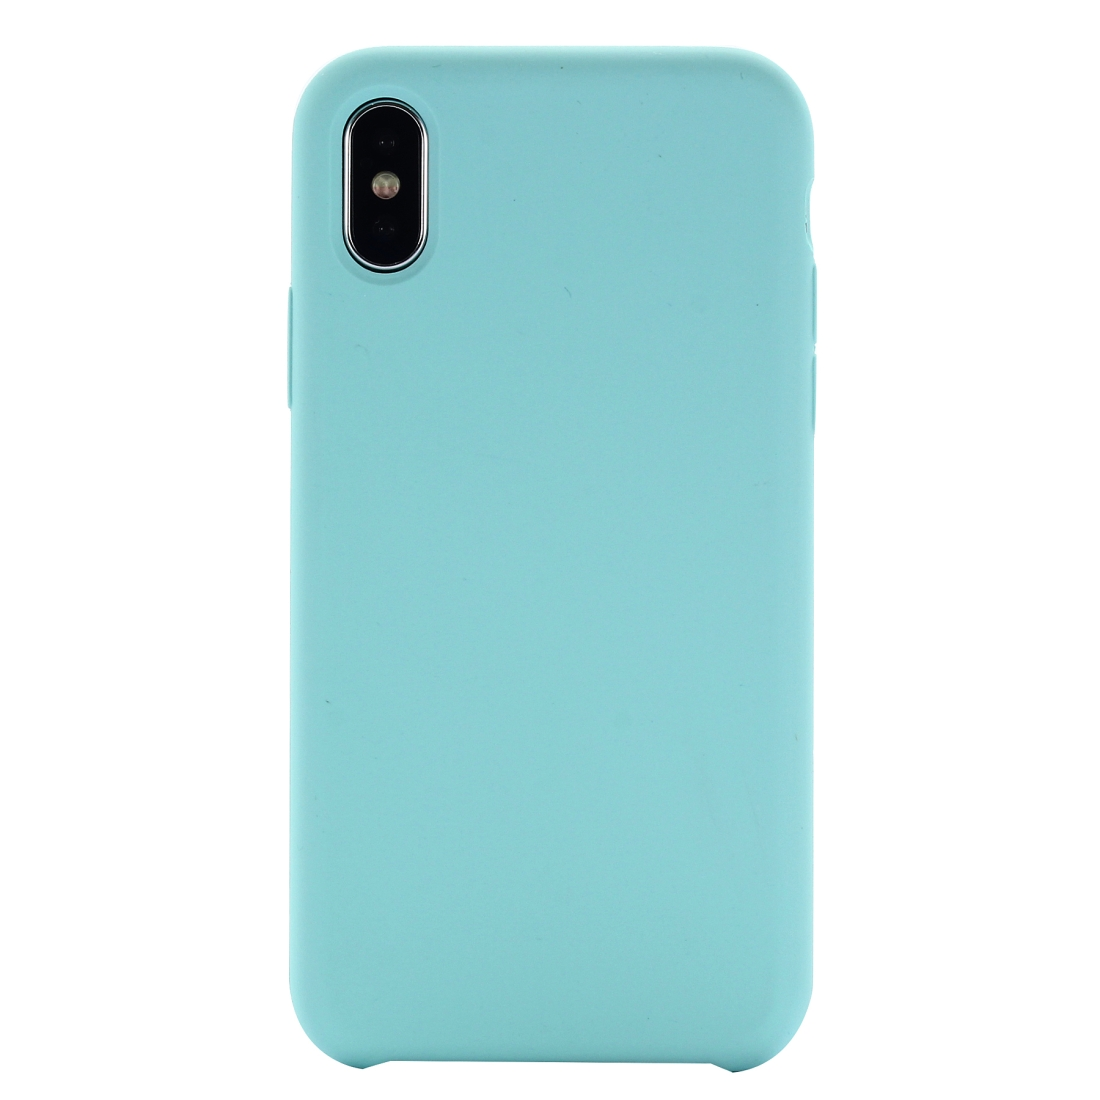 Four Corners Full Coverage Liquid Silicone Protective Case Back Cover for iPhone XS Max 6.5 inch (Green)